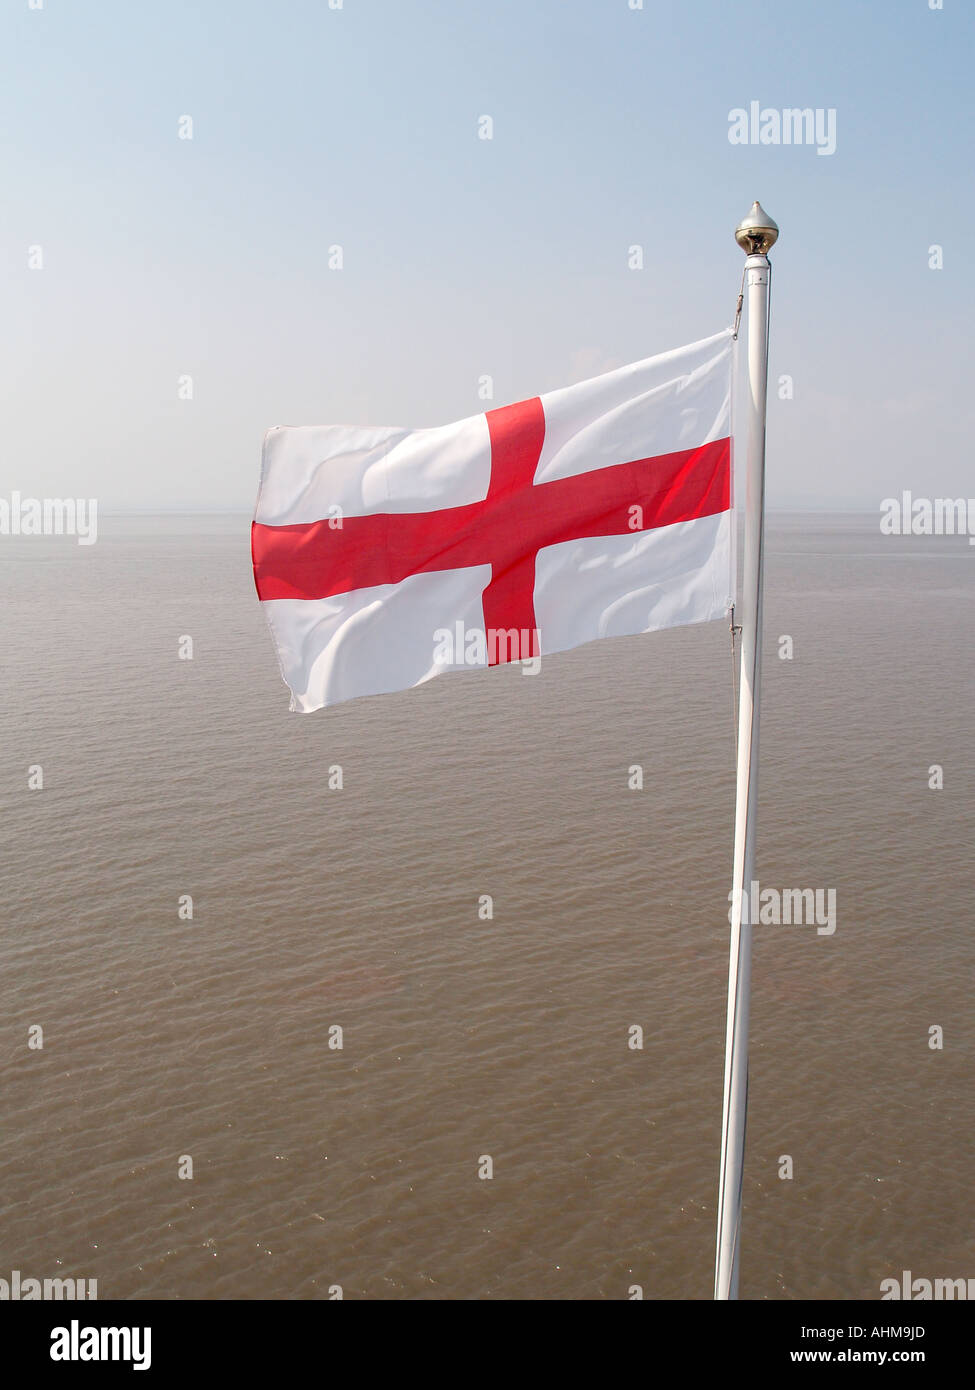 The red cross of St George, the English flag flying at Clevedon Pier, North Somerset. - Stock Image